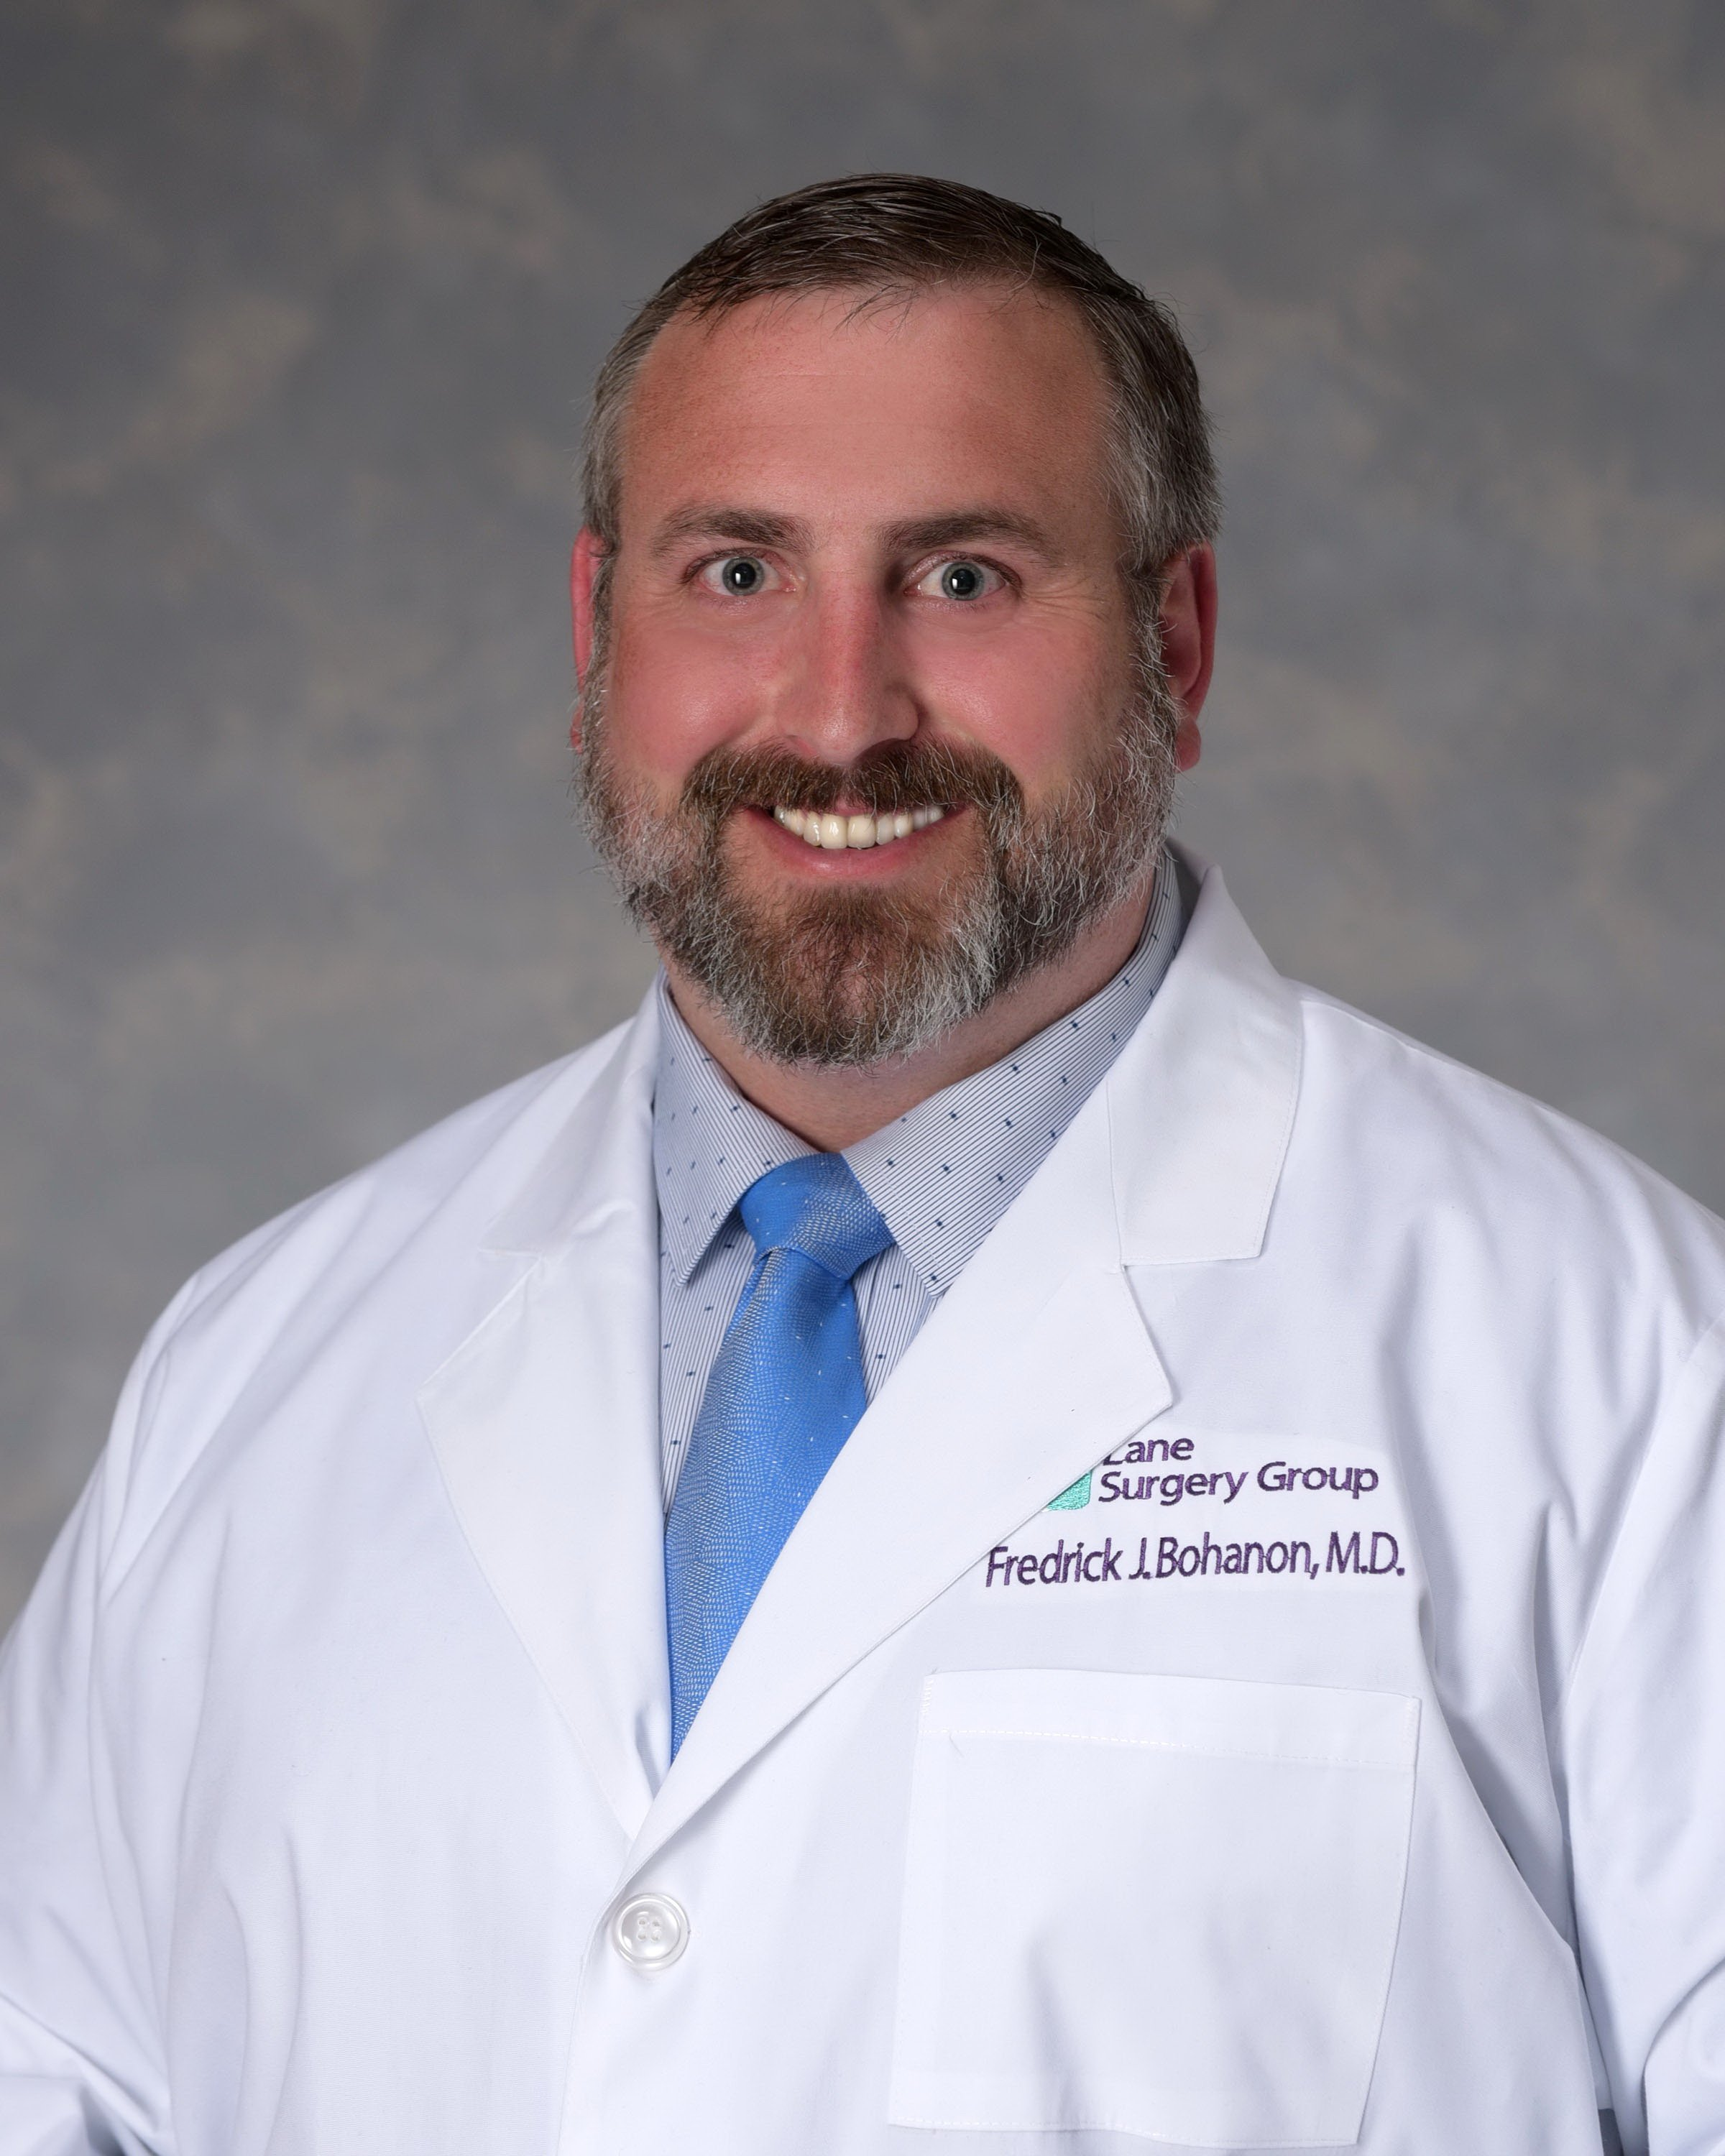 Dr. Fredrick Bohanon Joins Lane Surgery Group